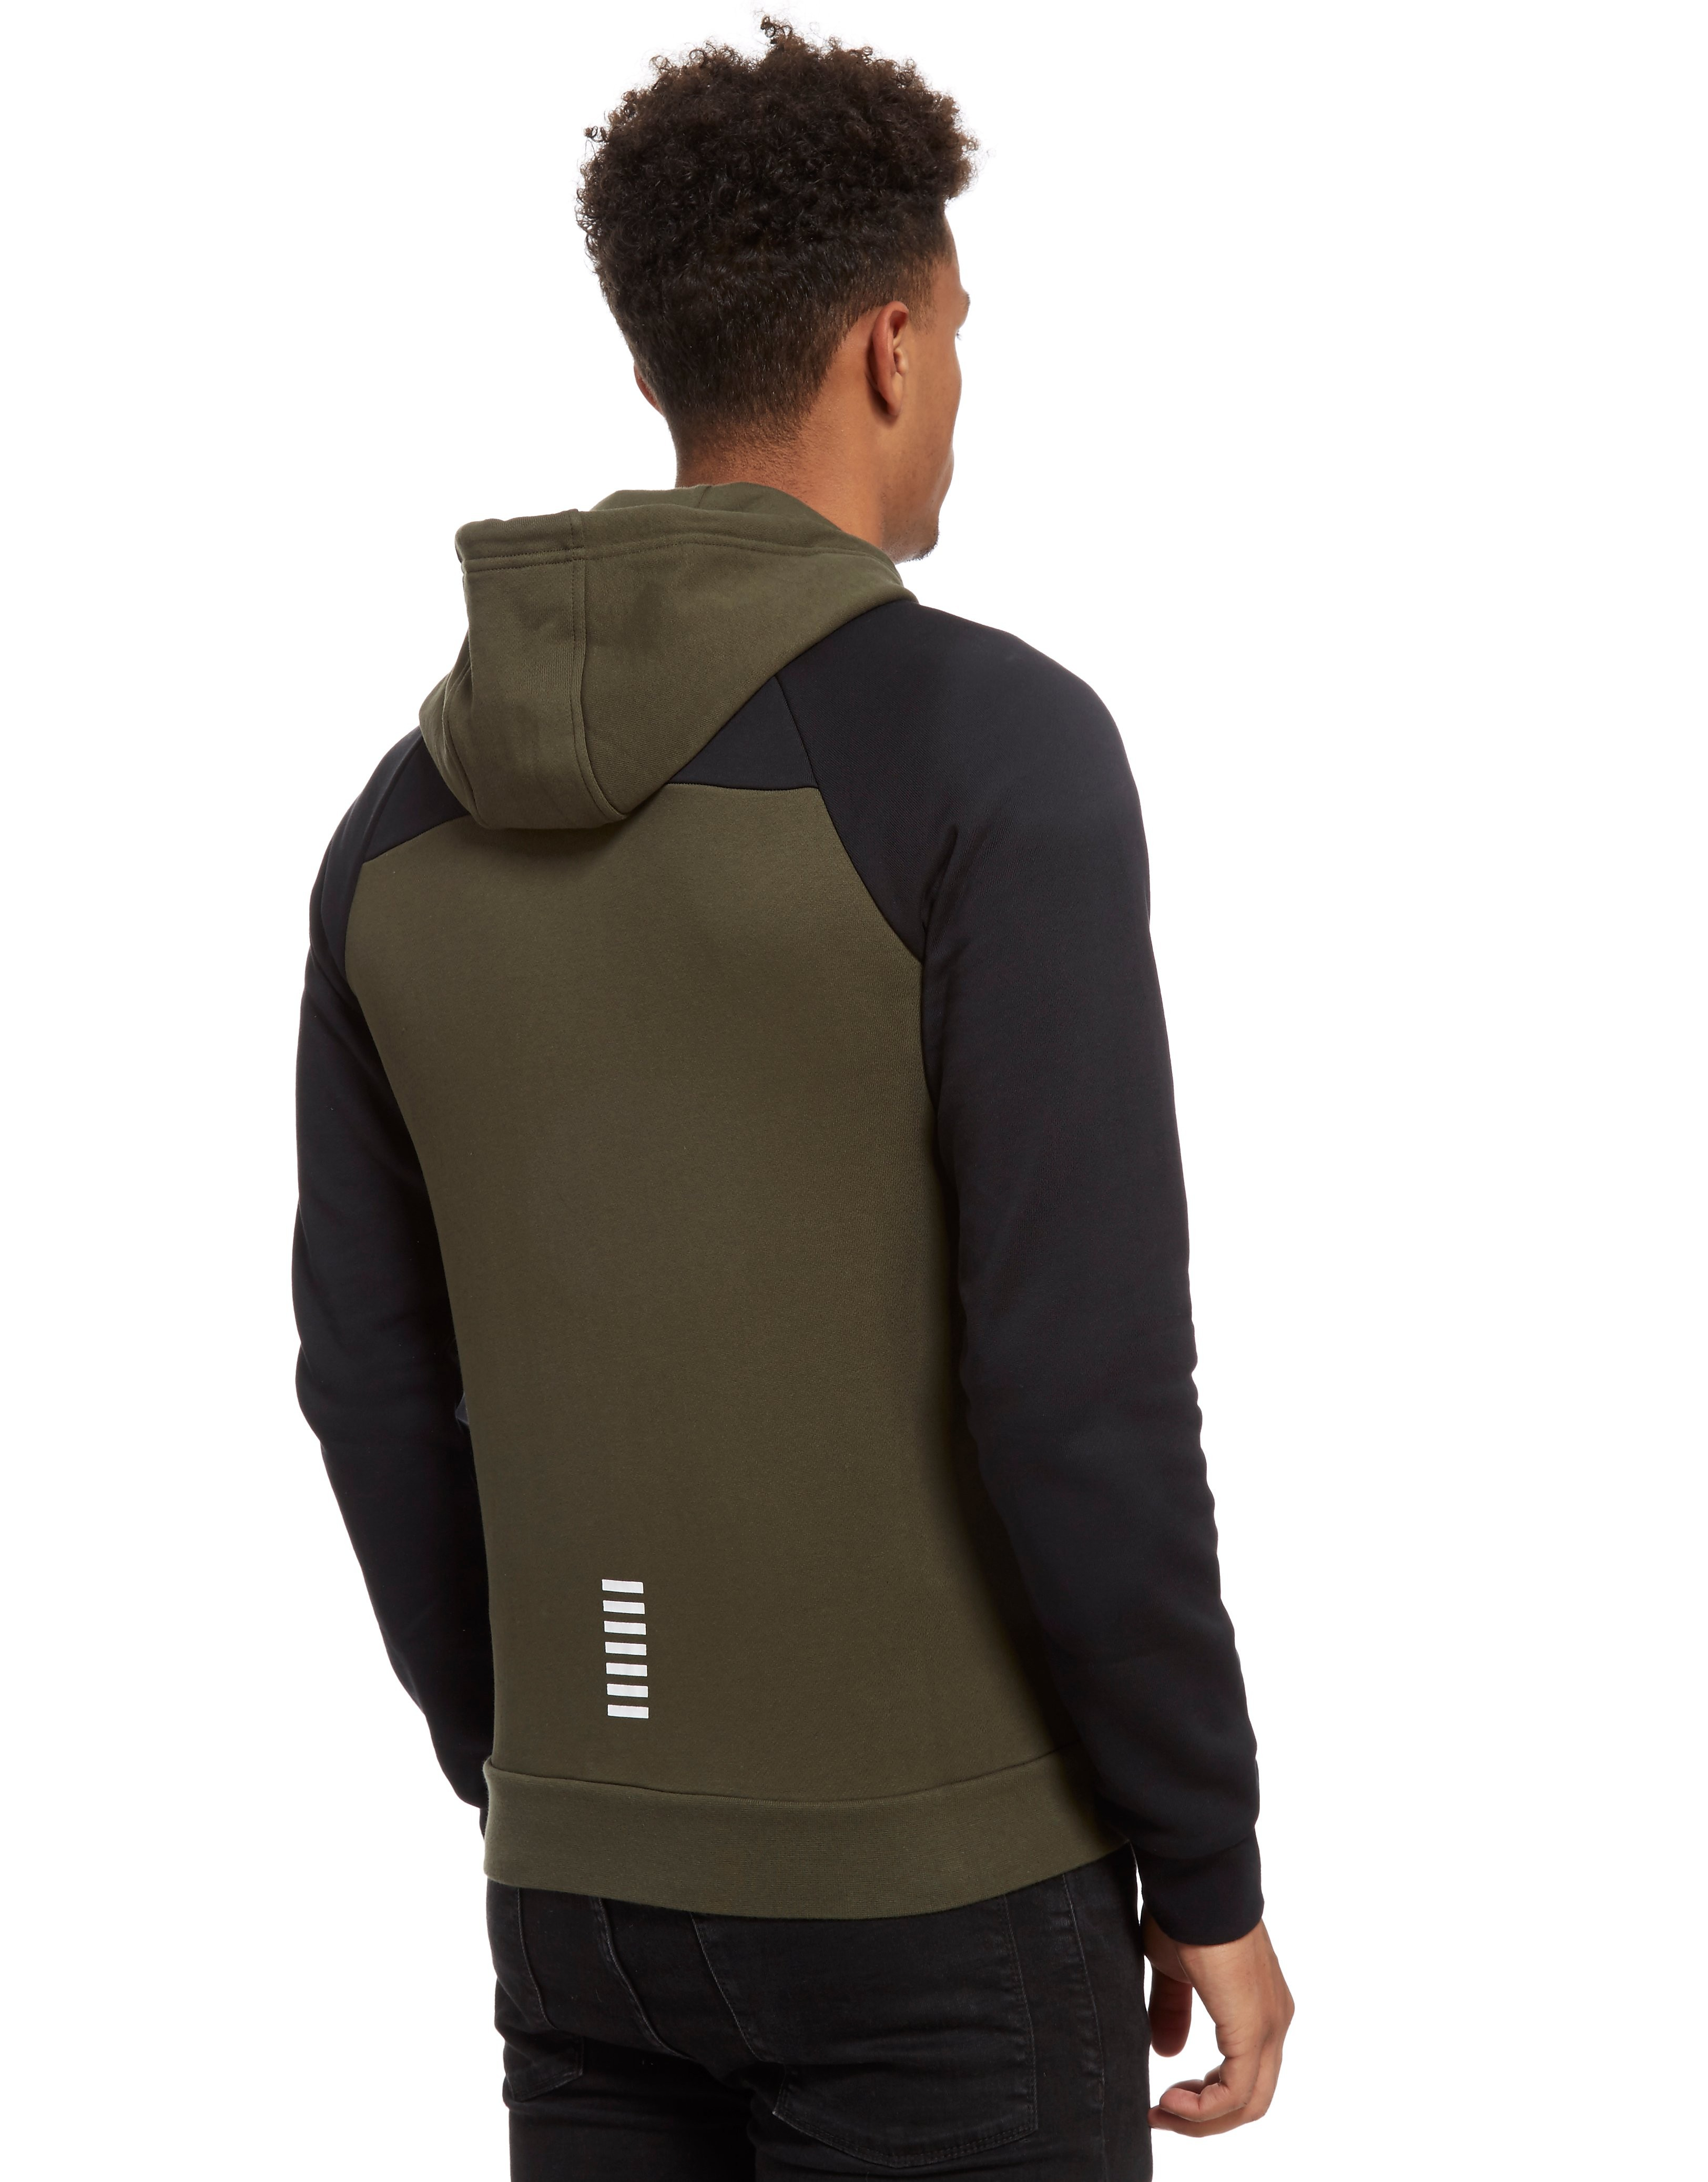 Emporio Armani EA7 Colourblock Zip Through Hoodie Heren